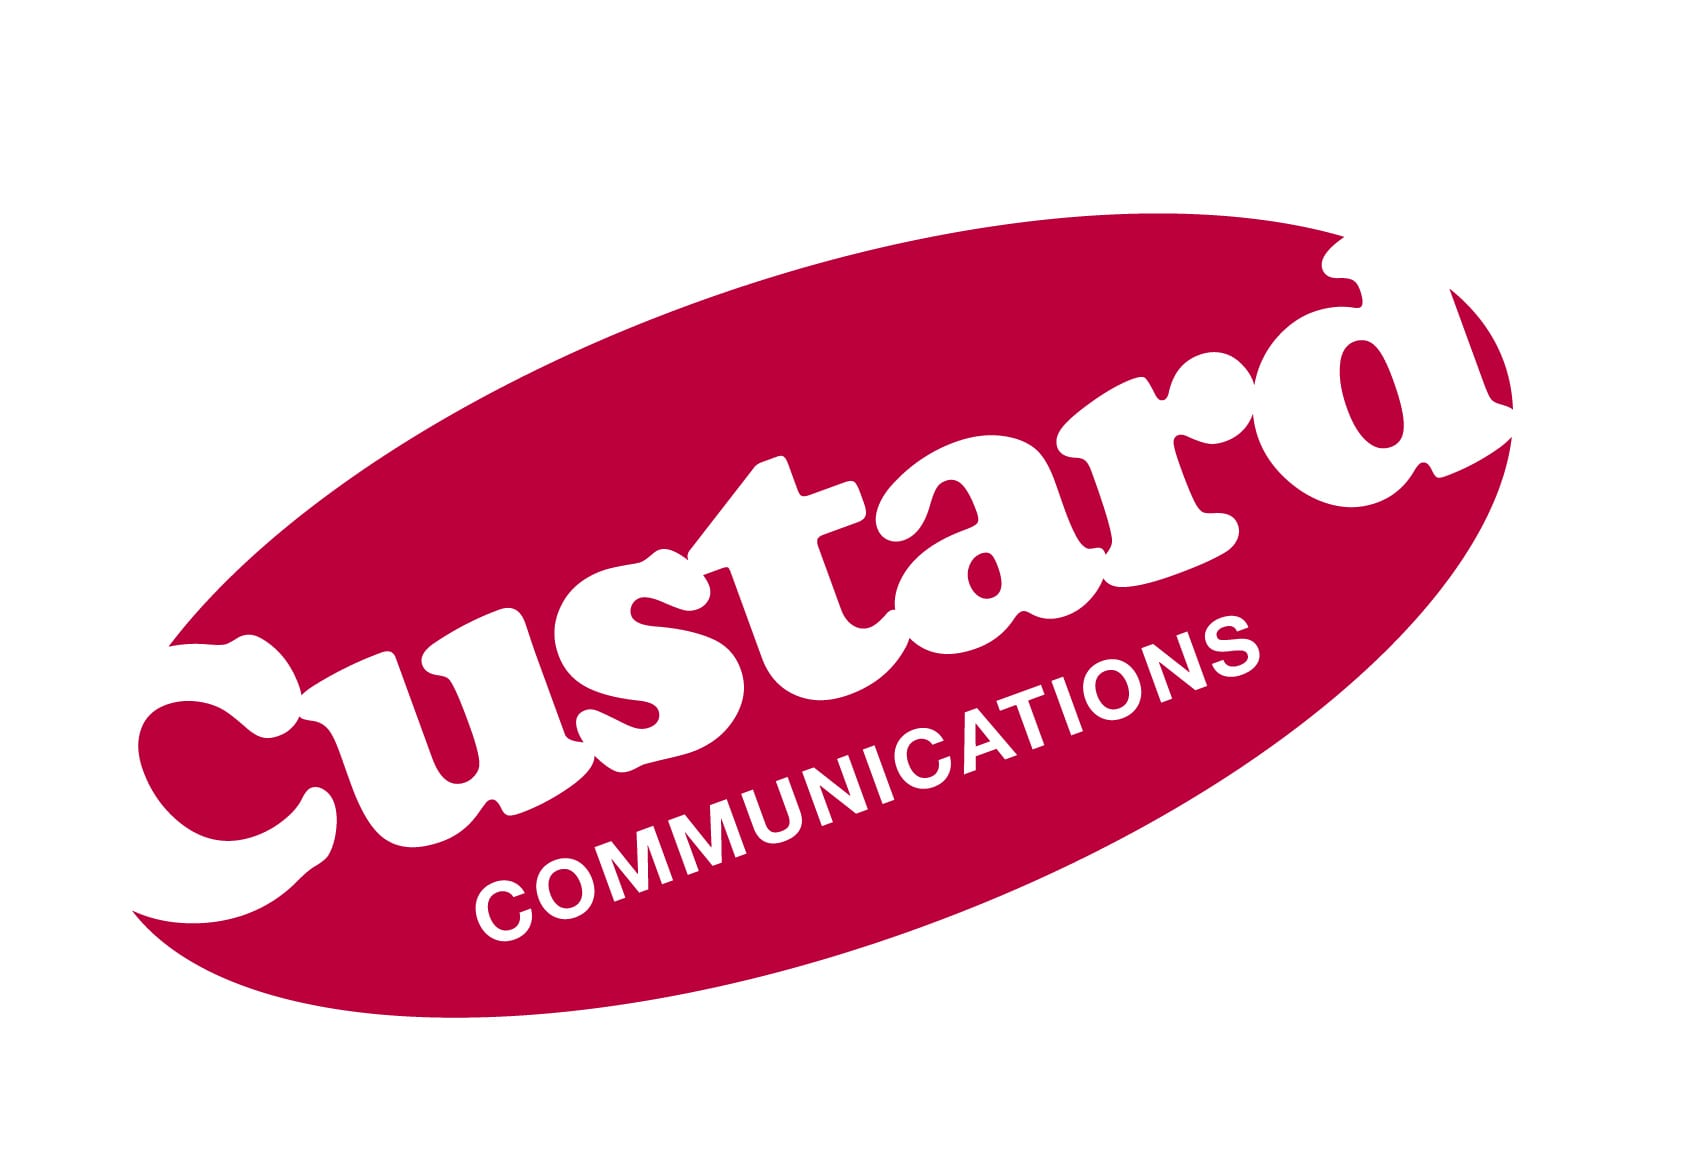 Custard Communications logo